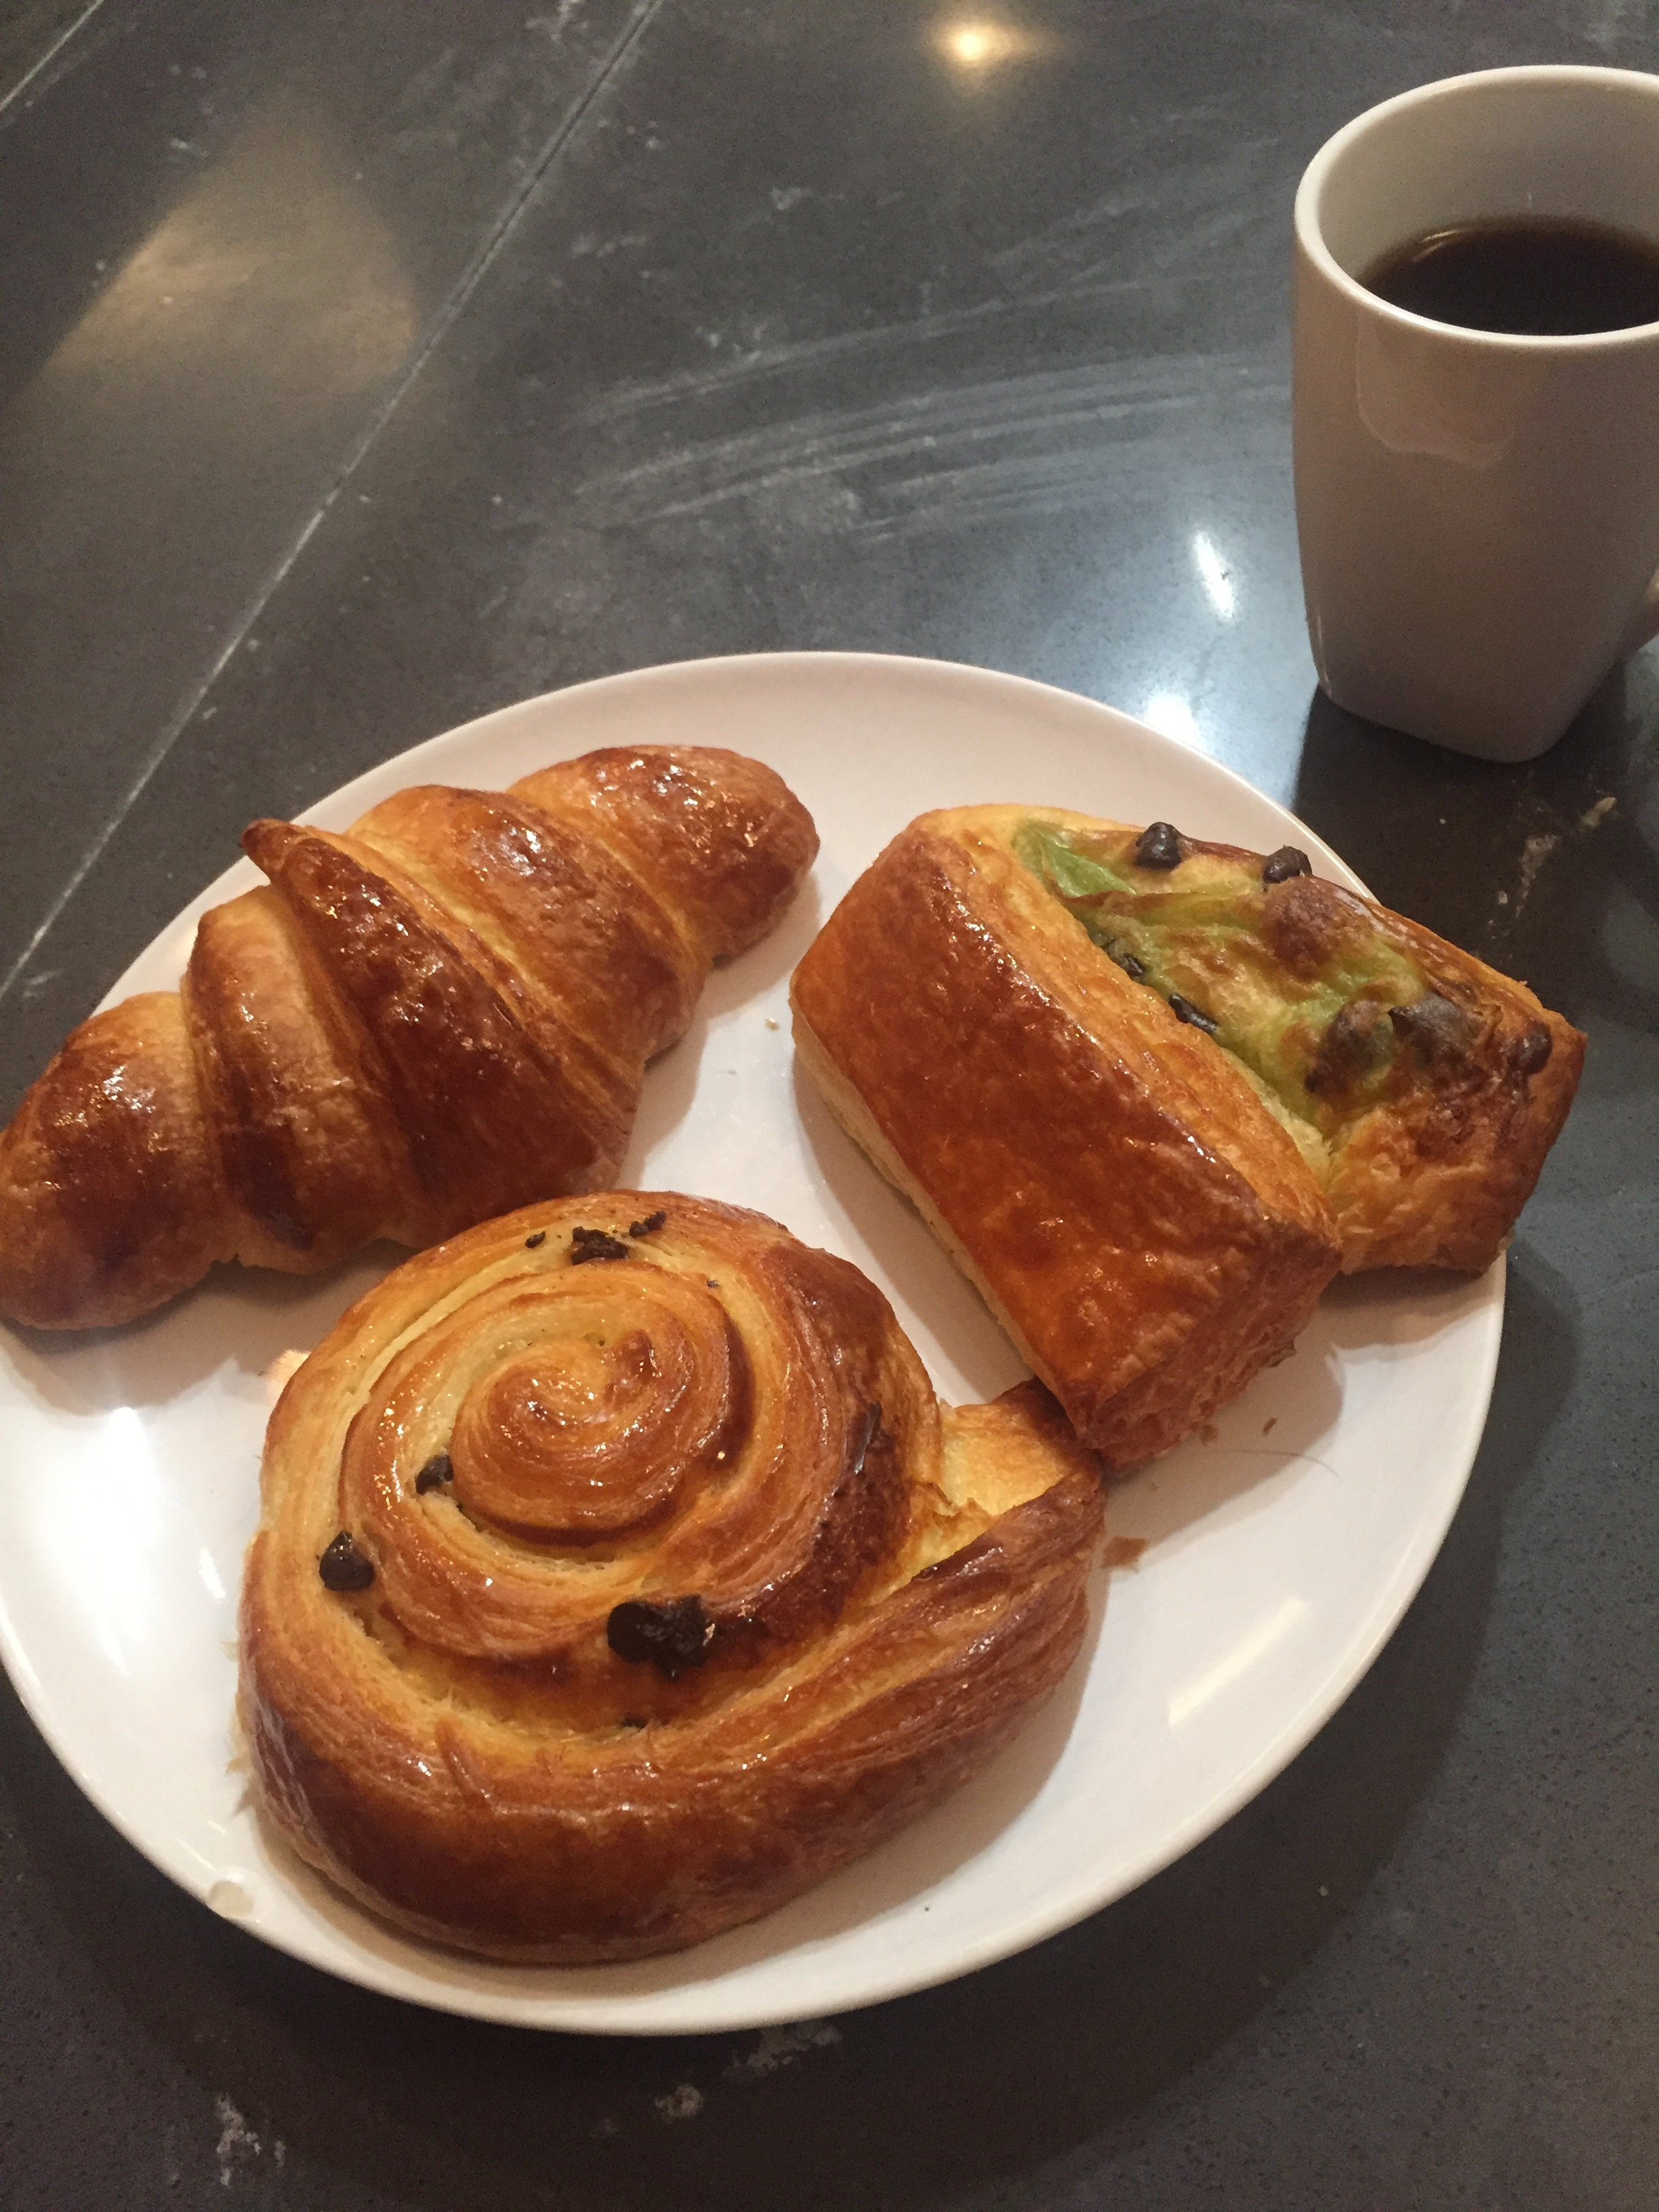 Homemade croissants and pain au chocolat